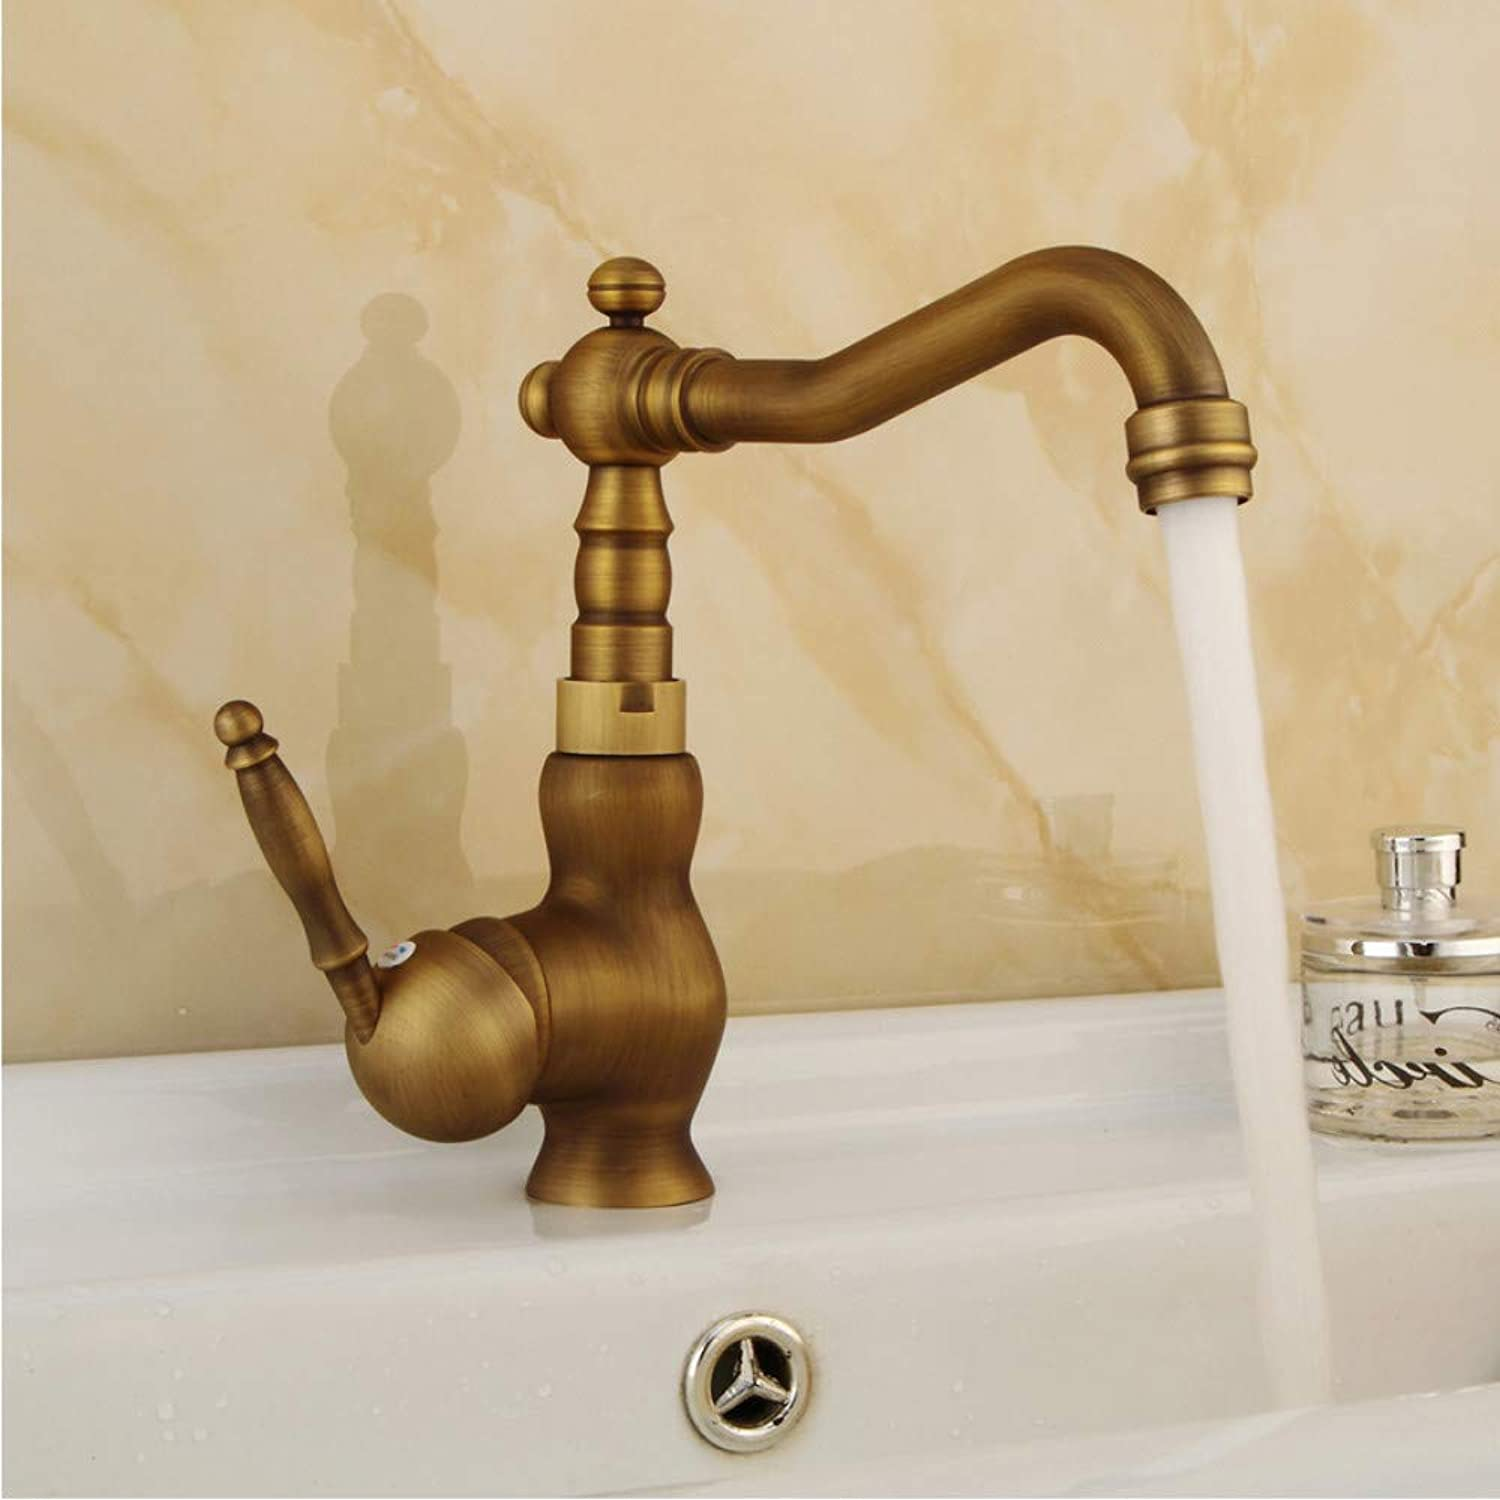 LLLYZZ Retro Wirotrawing Brass Bathroom Kitchen Faucets Single Holder Single Rotating Deck Mount Faucet Hot&Cold Water Mixer Tap